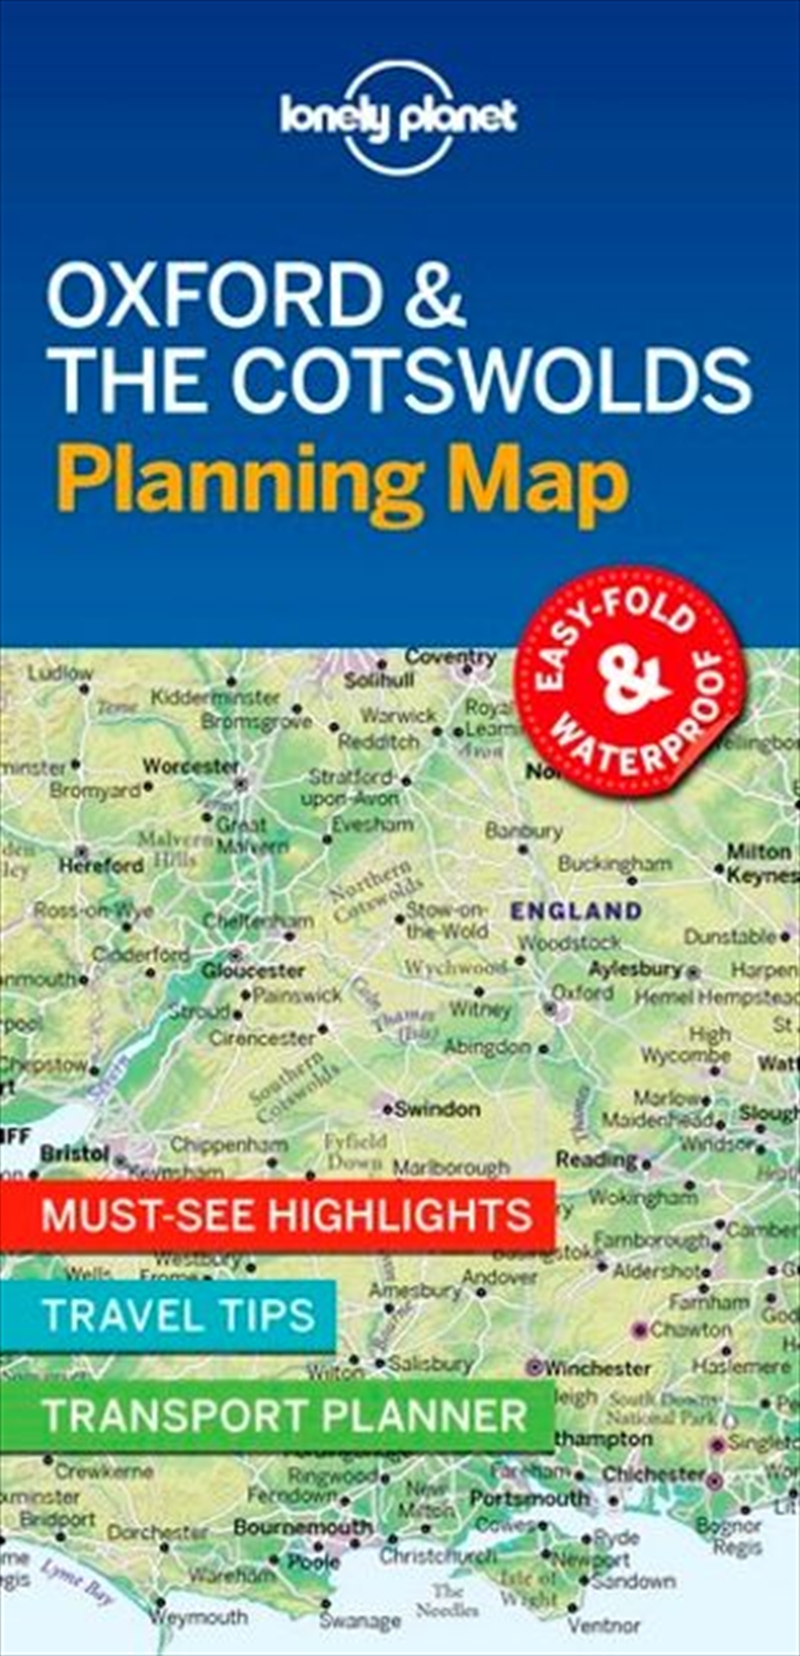 Lonely Planet Oxford & the Cotswolds Planning Map | Sheet Map